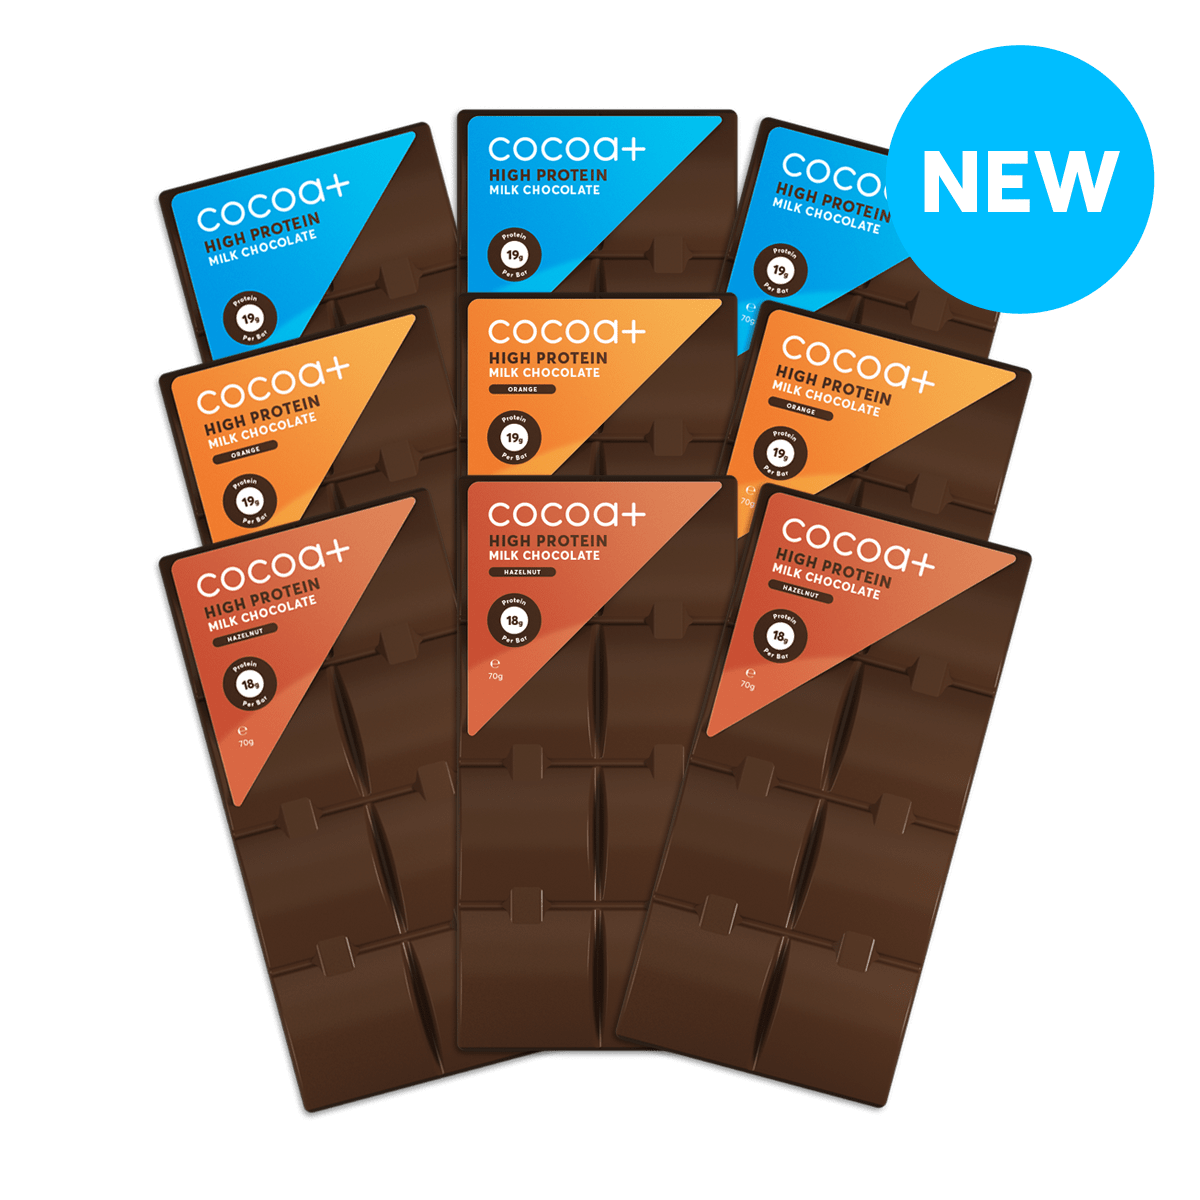 The 9-Pack (Now including New Gingerbread Spiced Milk Choc)